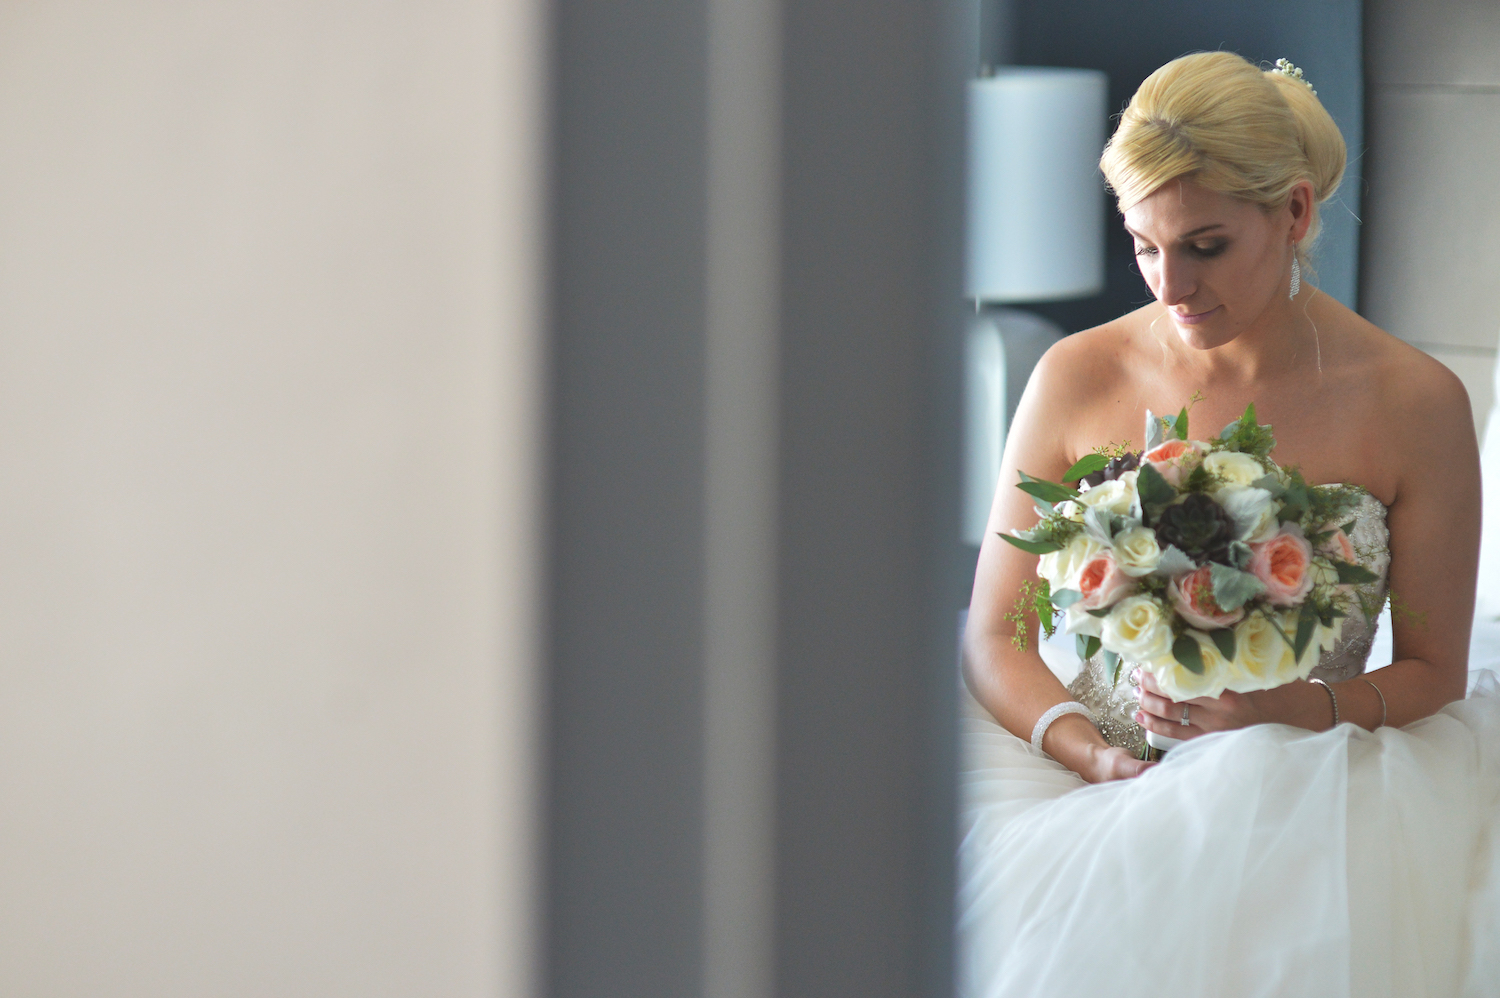 Laura and Alex – Wedding Photo Highlights from The Hyatt House Shelton in Shelton, CT